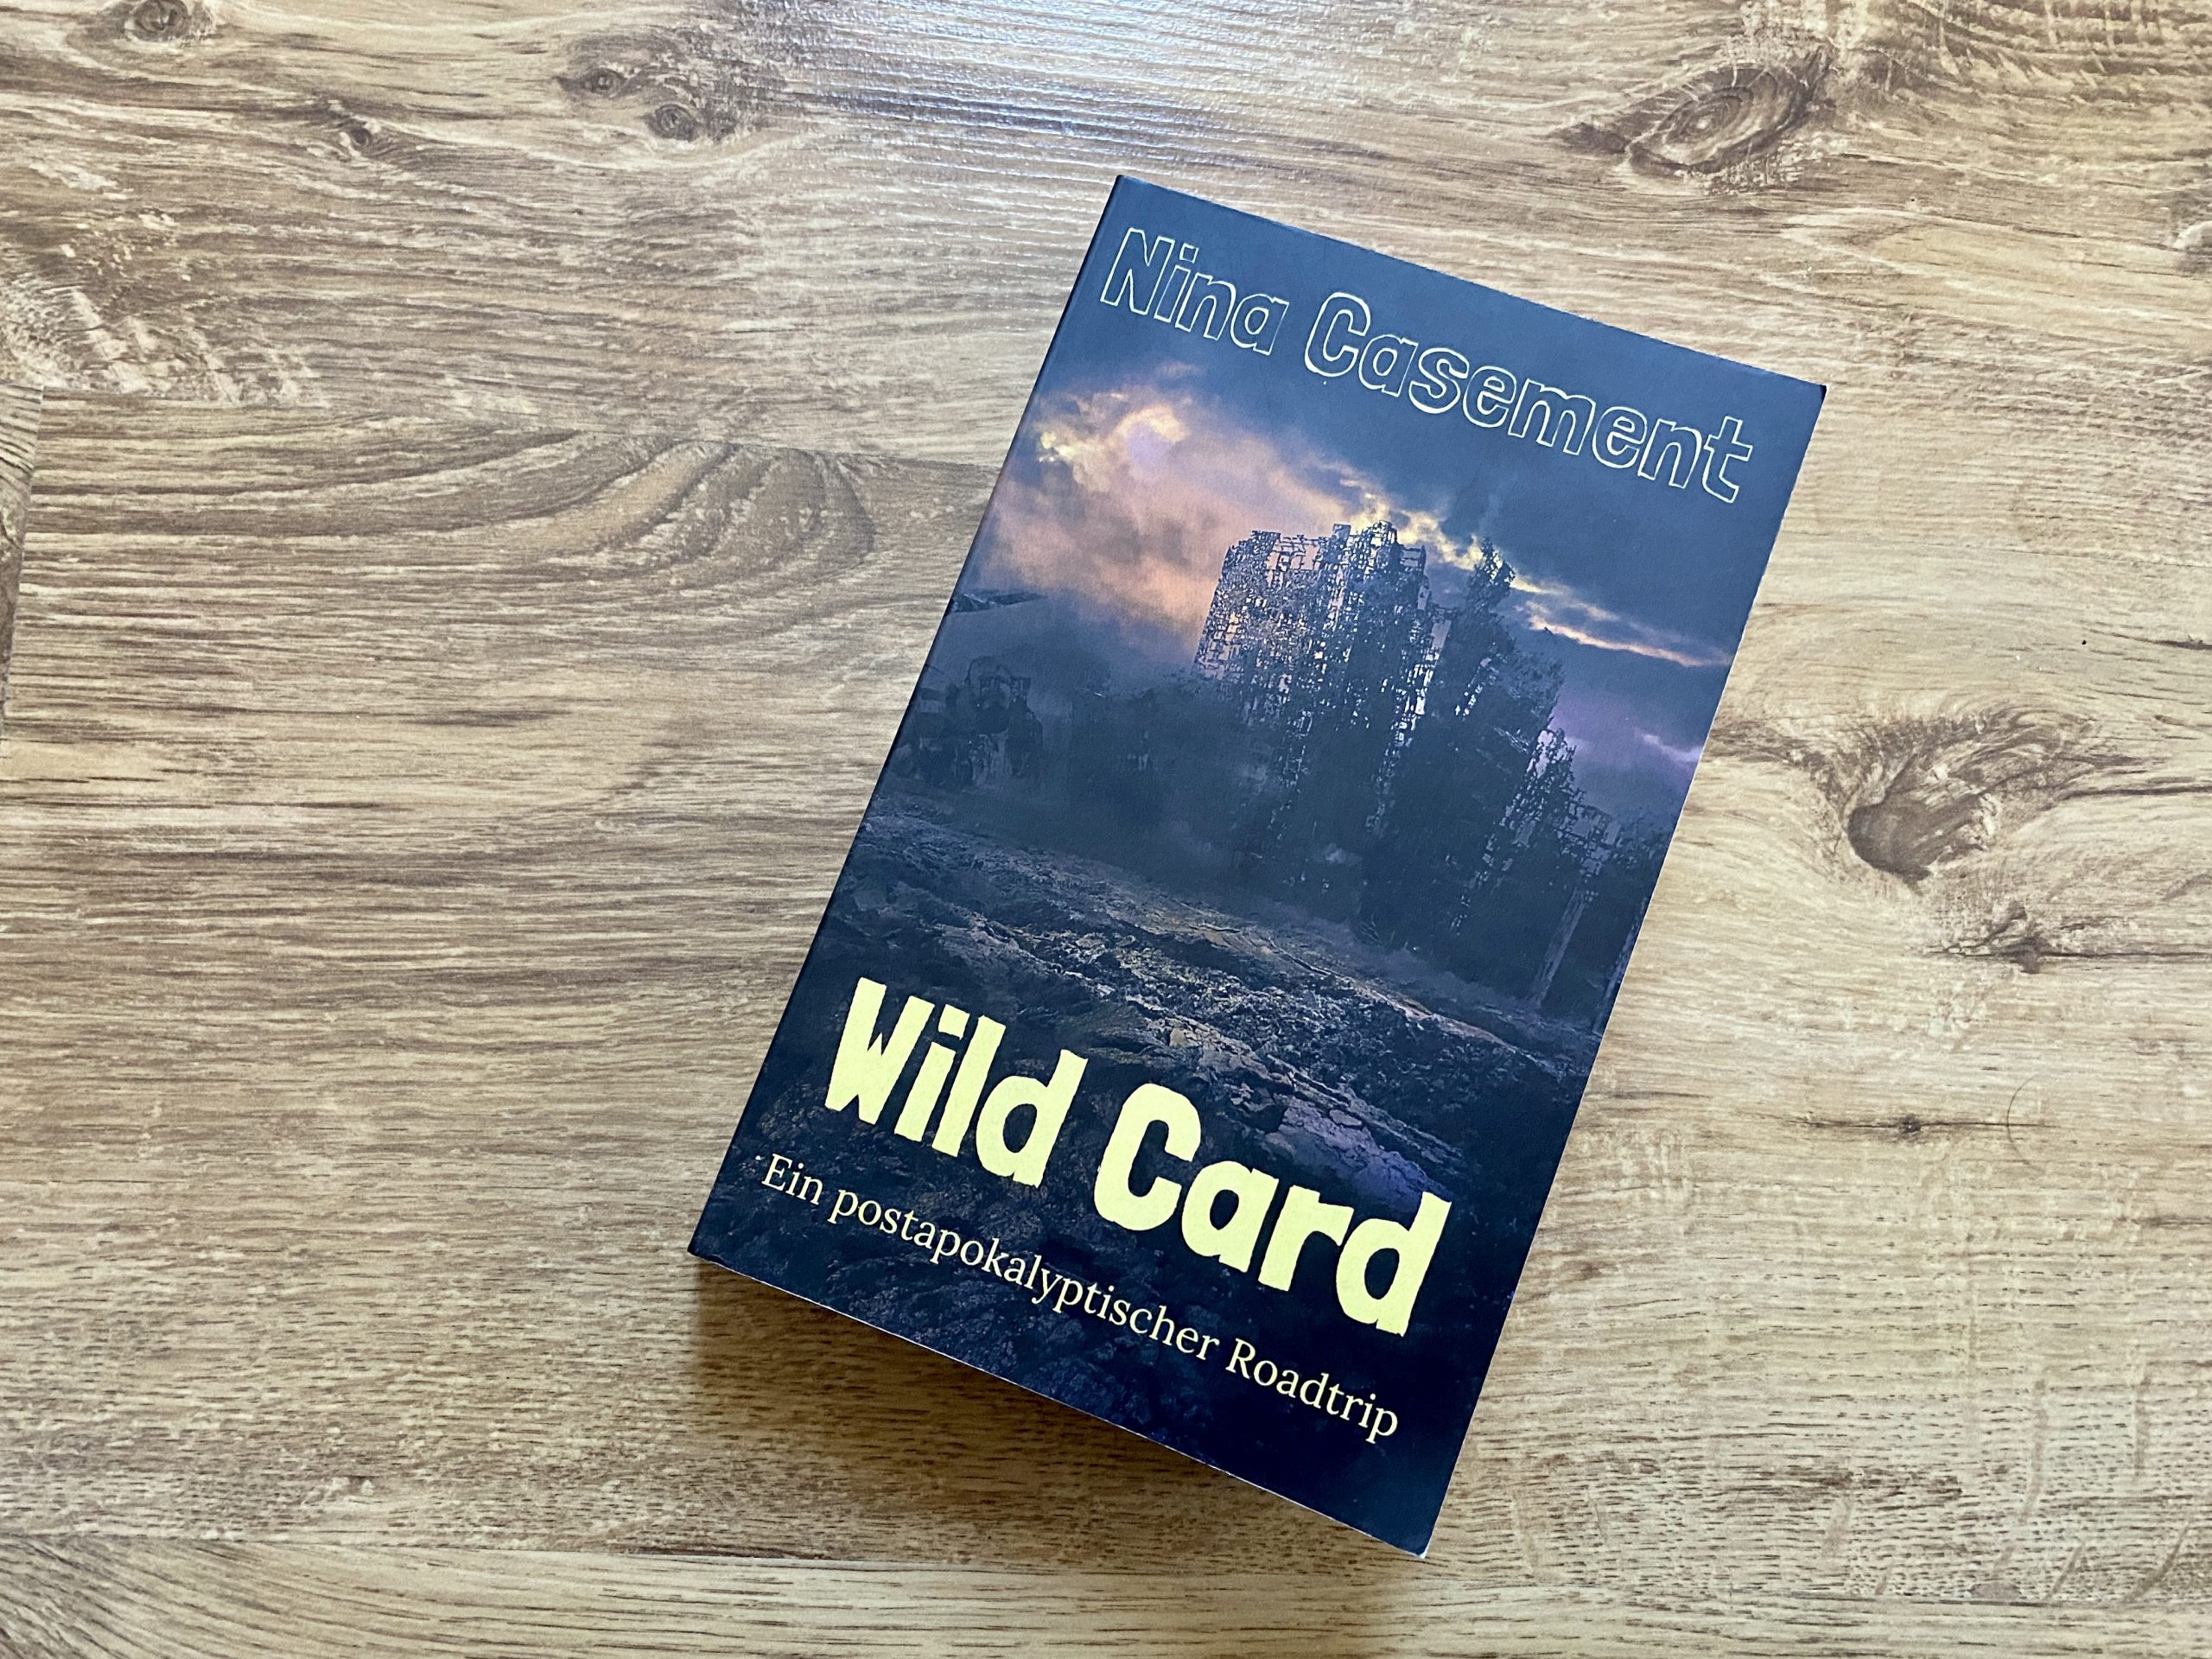 Wild Card - Nina Casement